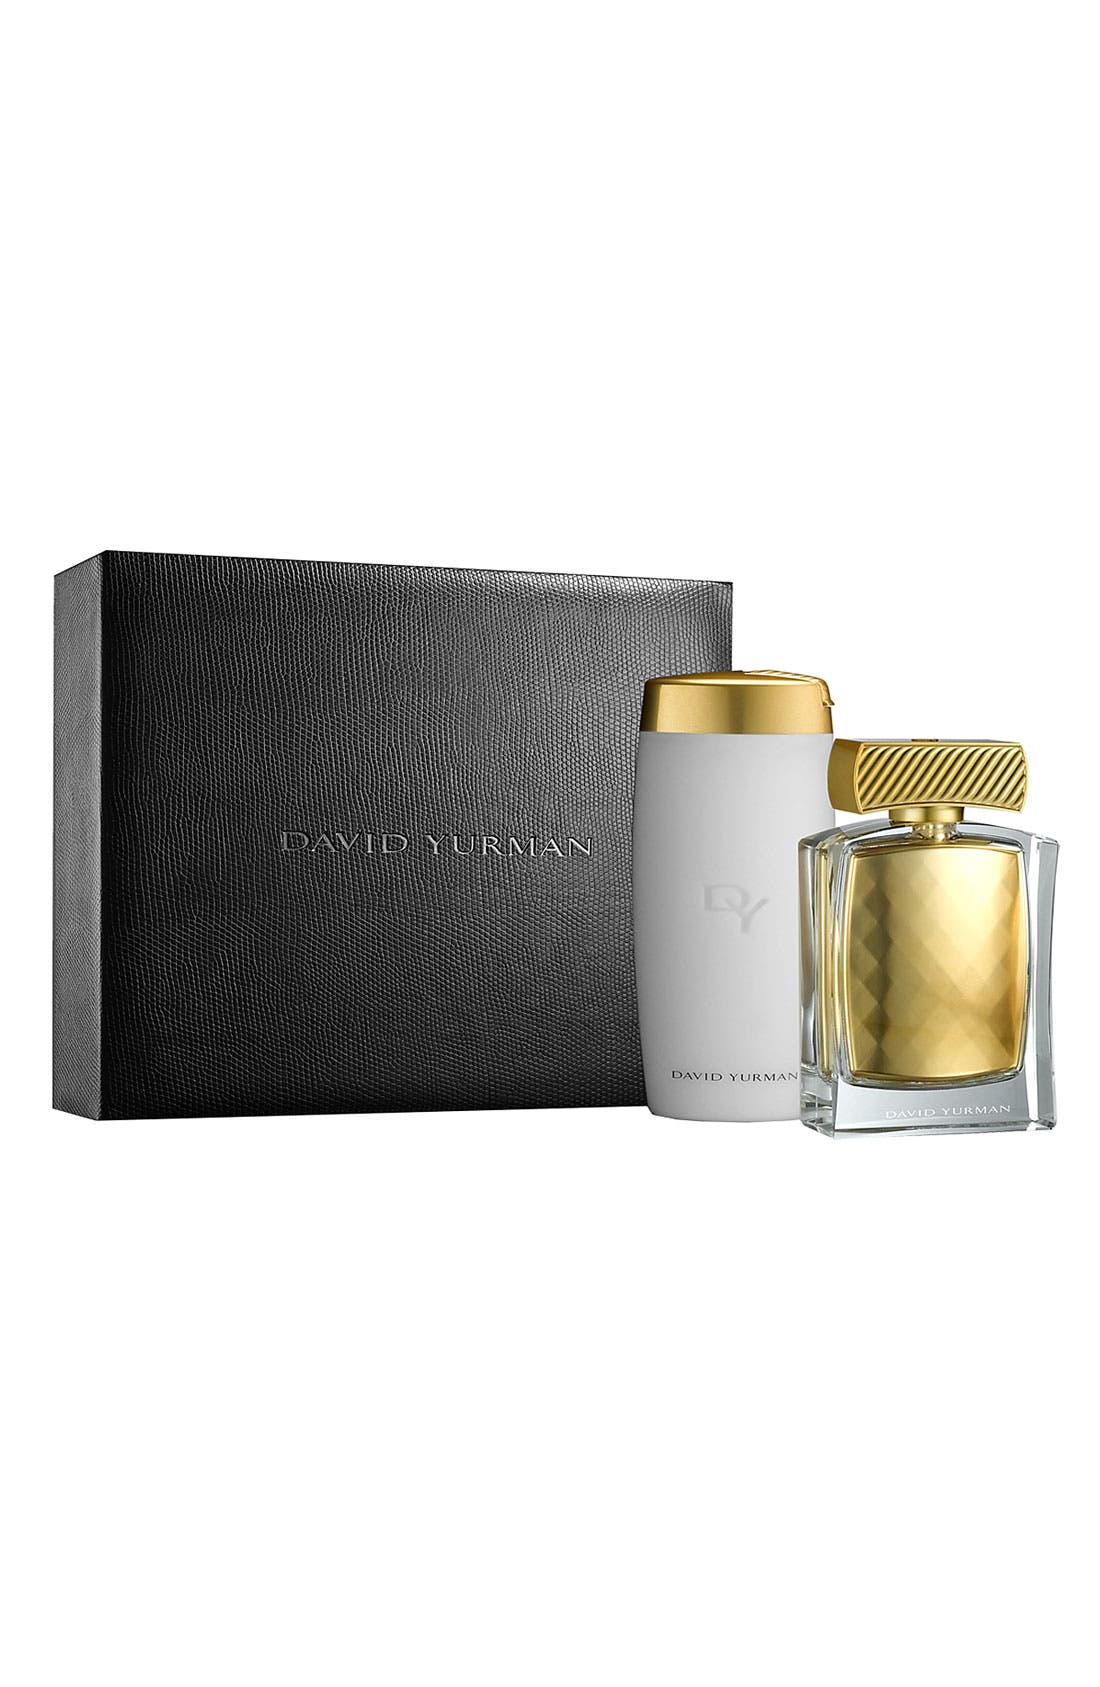 DAVID YURMAN,                             'Expressions' Gift Collection,                             Alternate thumbnail 2, color,                             000